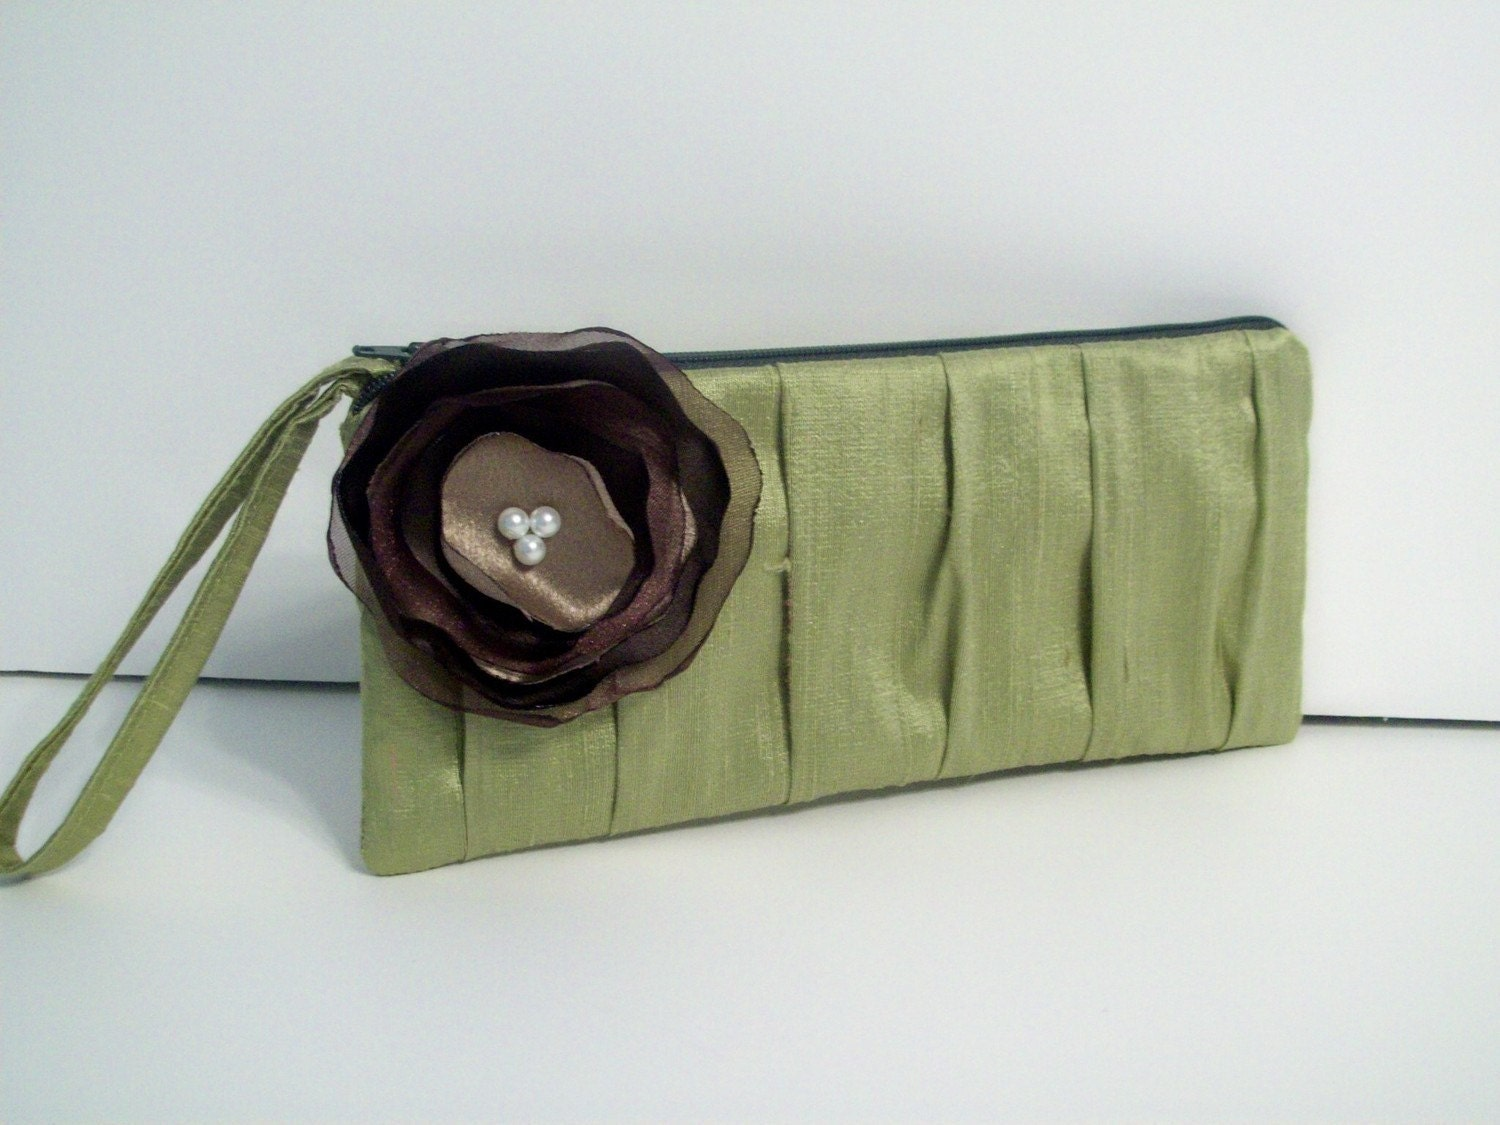 1 Pleated Clutch w/hidden wrist strap in Pistachio Silk Dupioni w/Chocolate and Latte Poppy (choose your colors) Monogramming available